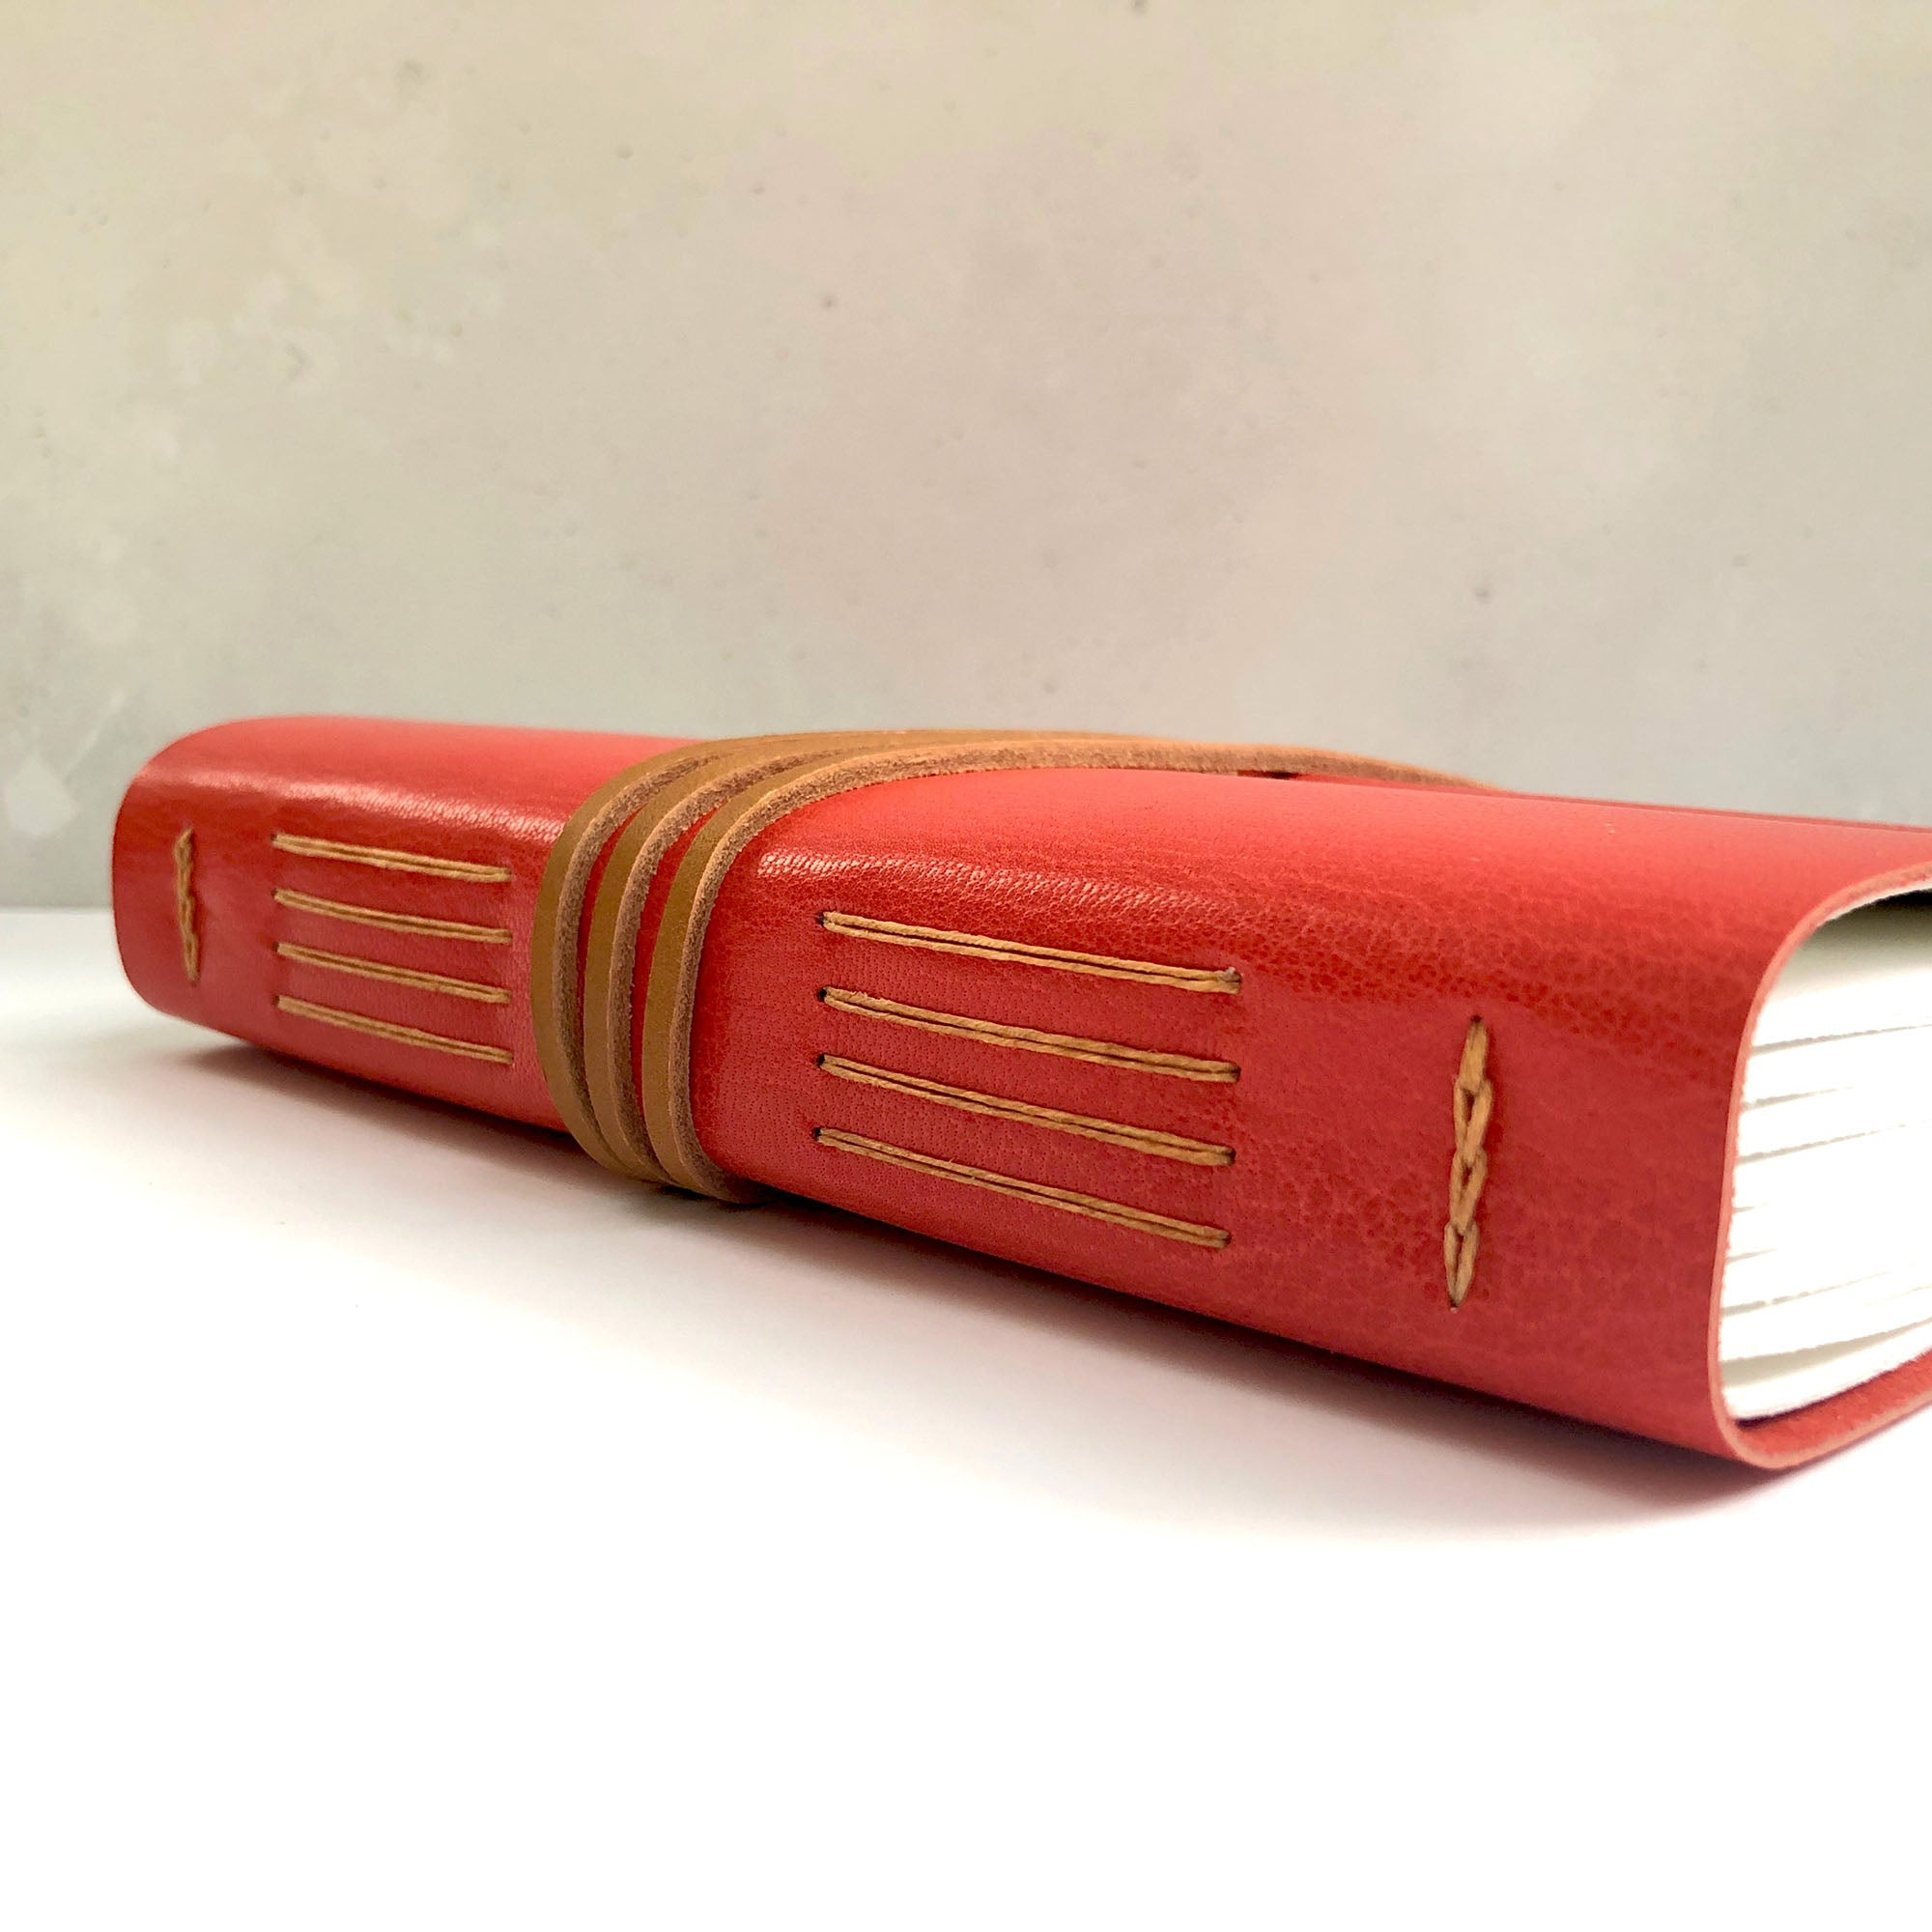 Spine of Journal in Red leather with Tan Longstitch binding, from Bound by Hand